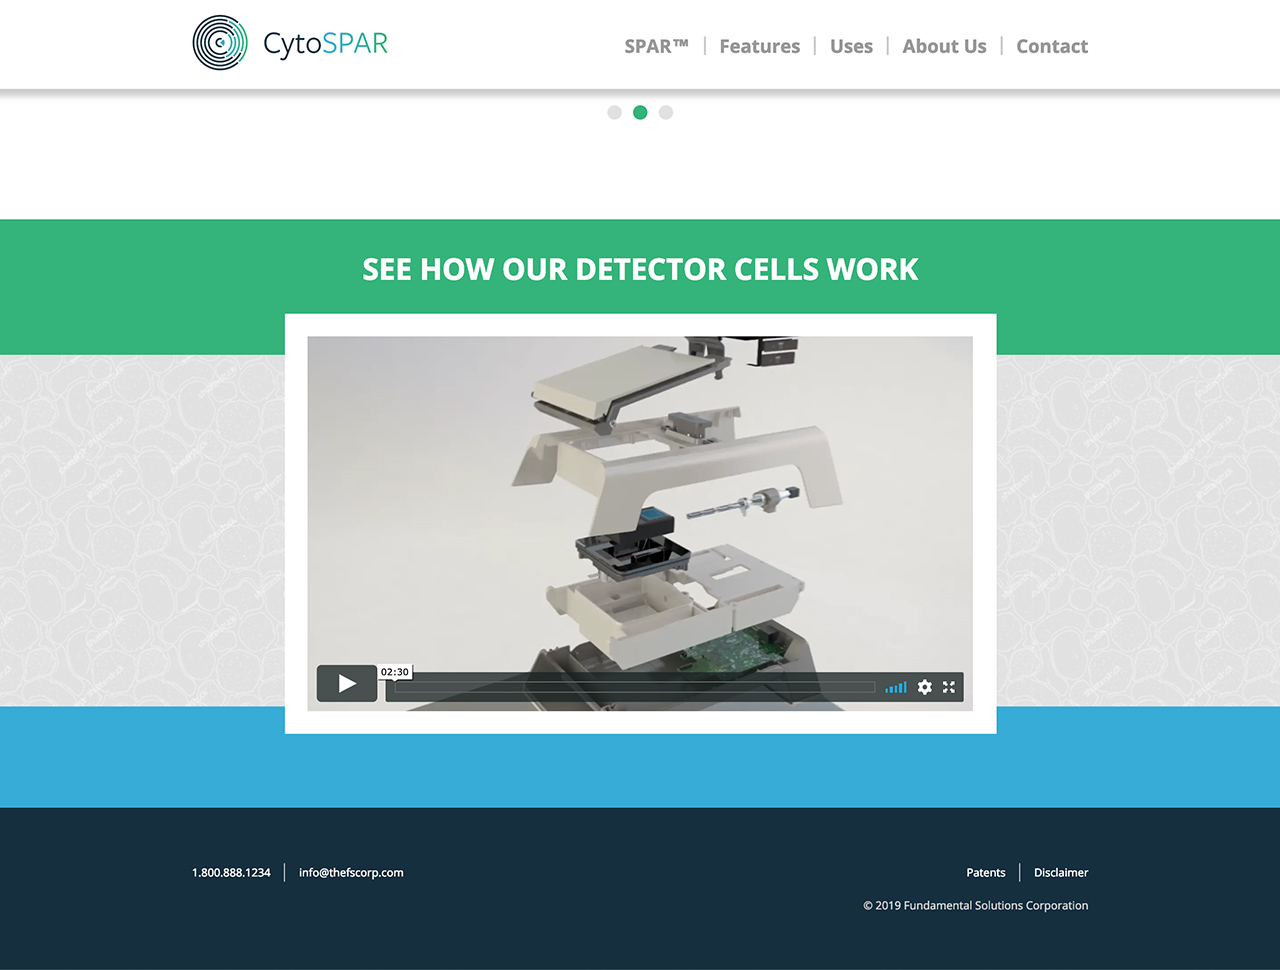 cytospar-2reveal-website-04.jpg